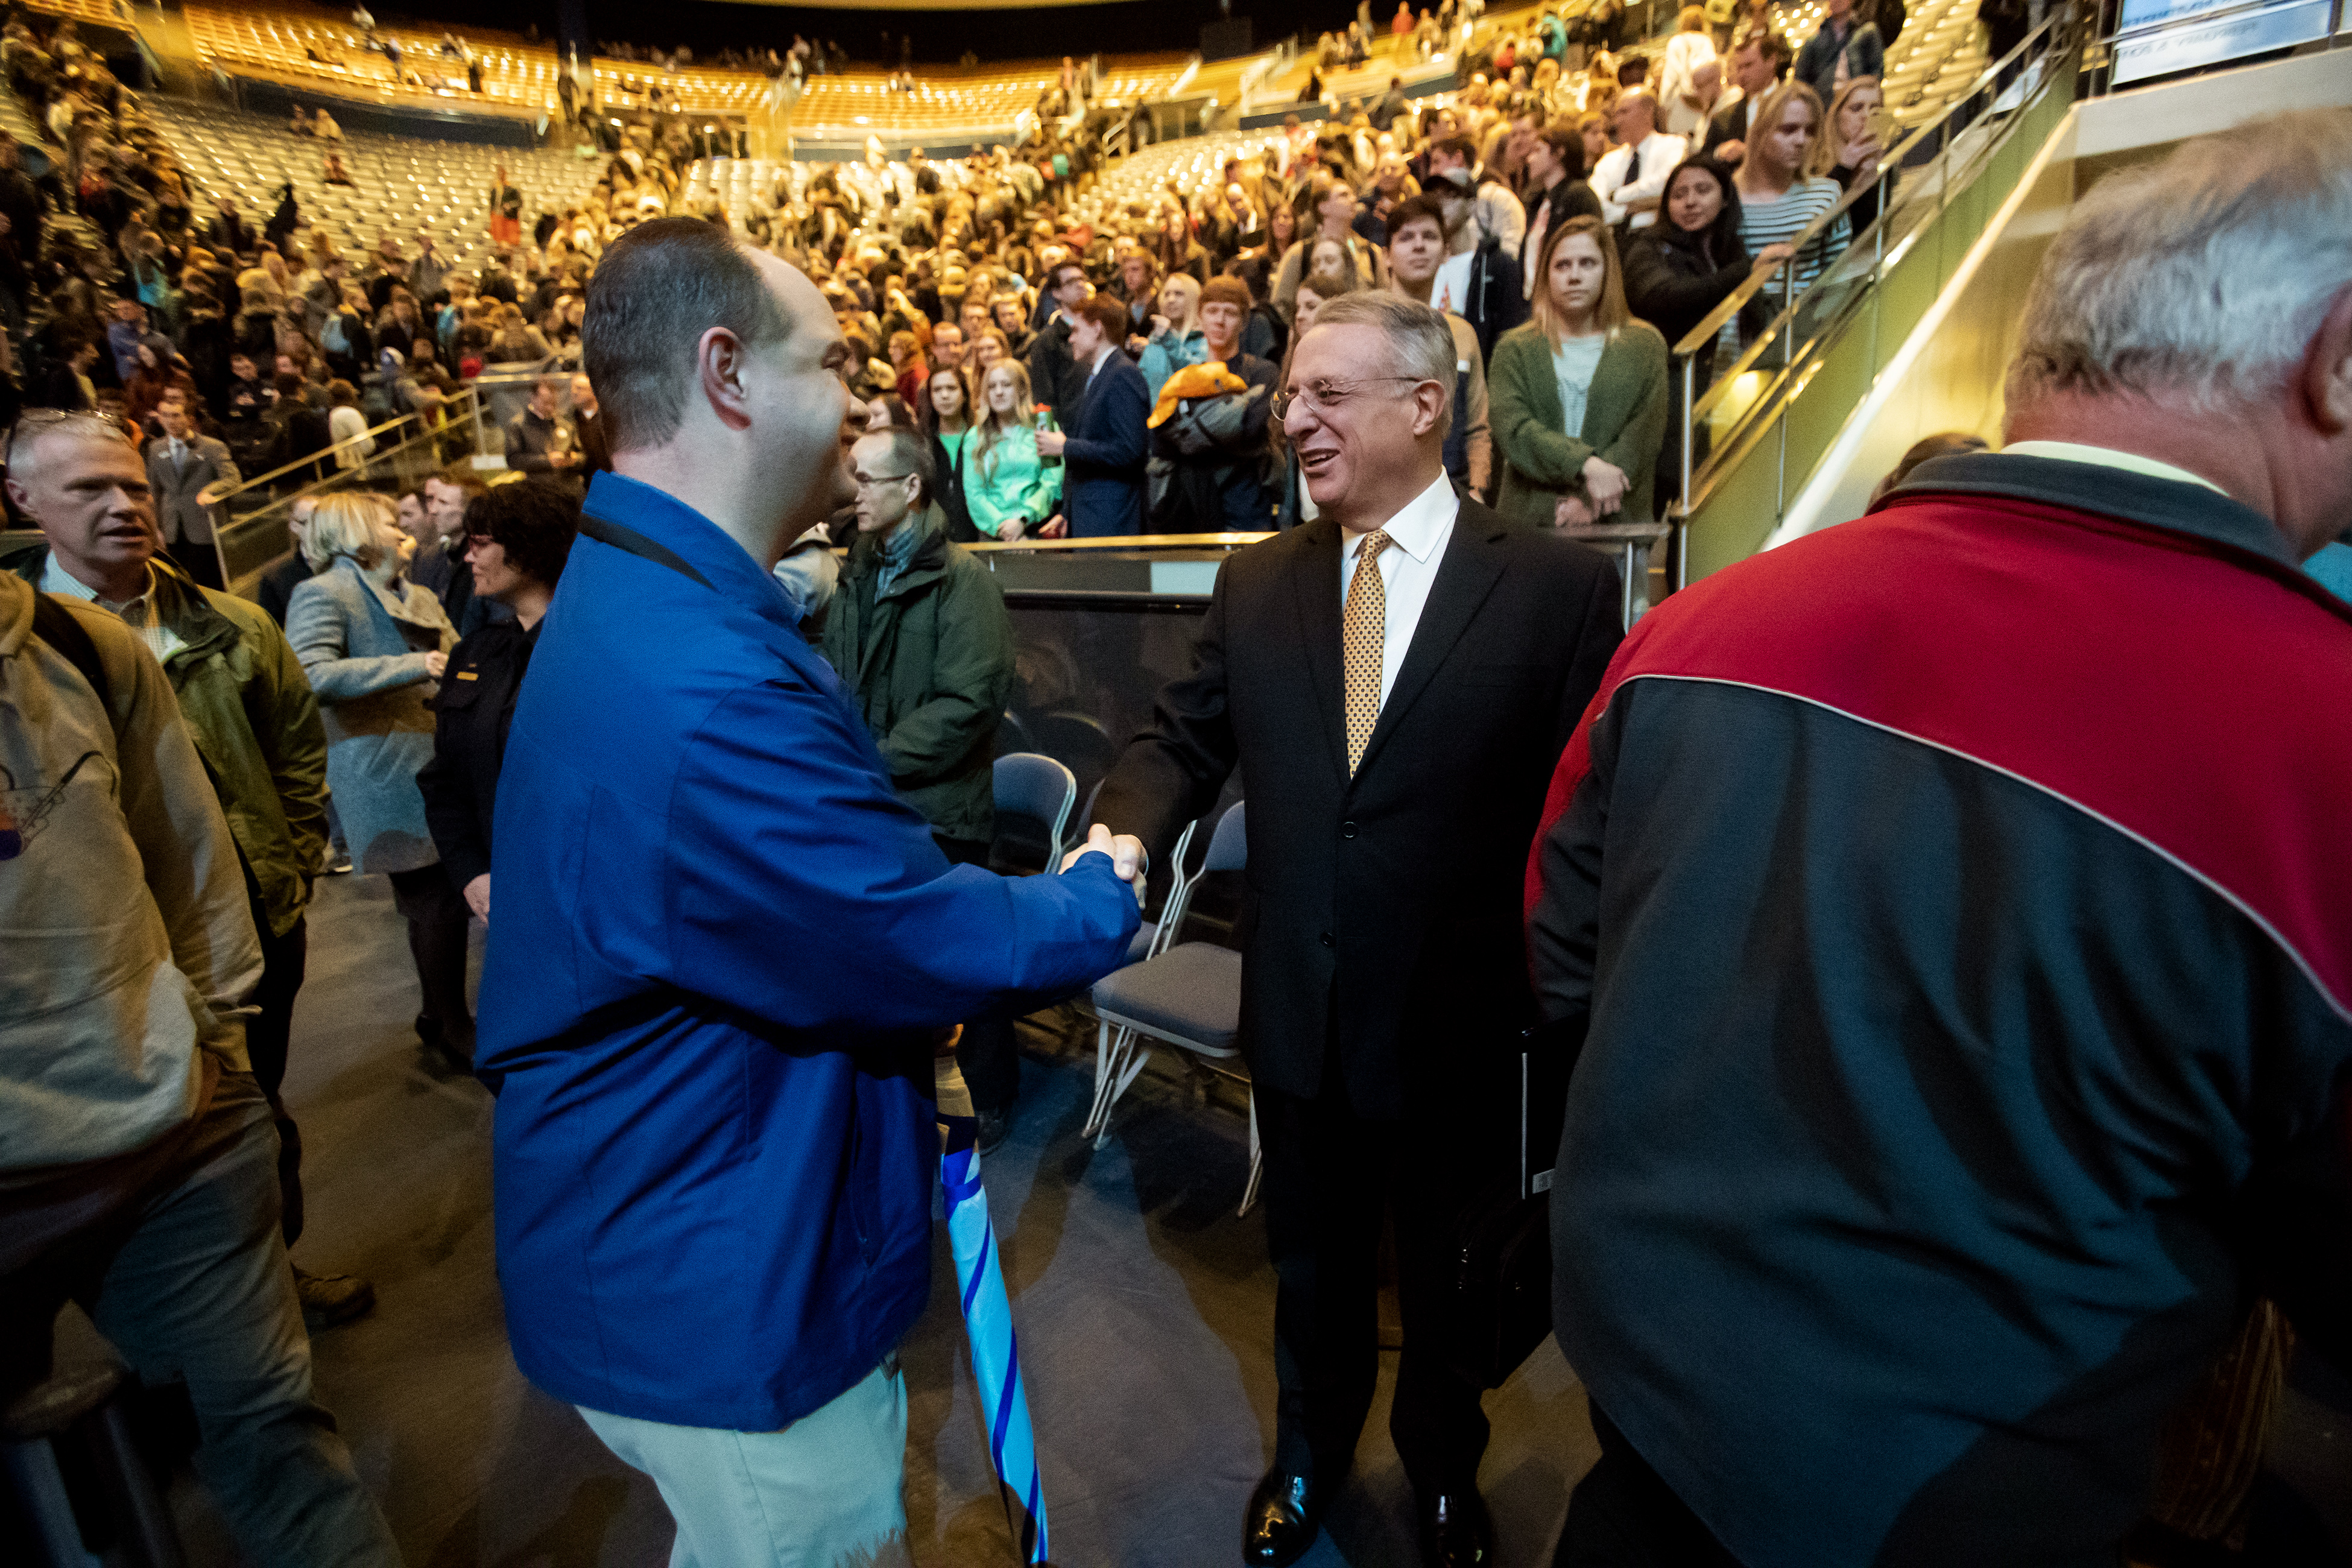 Elder Ulisses Soares of the Quorum of the Twelve Apostles of The Church of Jesus Christ of Latter-day Saints greets some of the people attending as he exits after speaking at a devotional at BYU in Provo on Tuesday, Feb. 5, 2019.